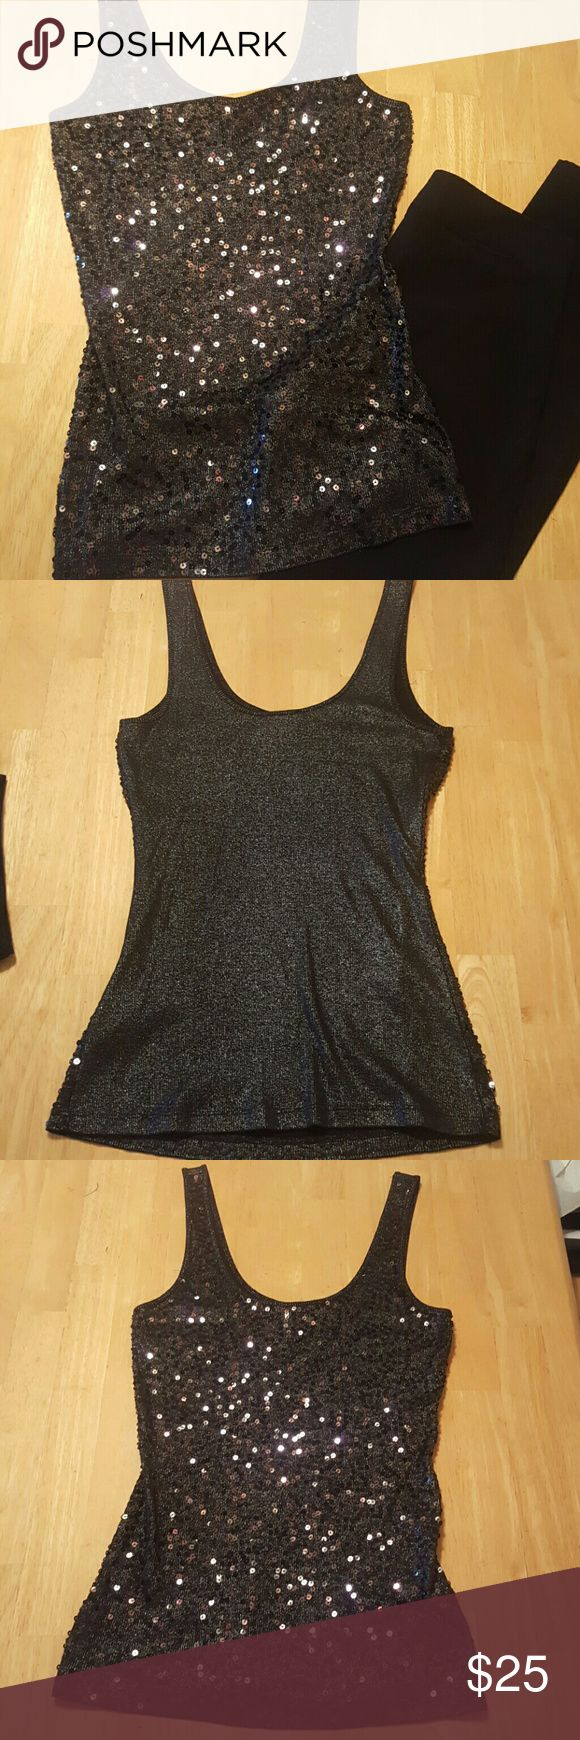 Express black sequence tang top Express your self with this cute tang top by express. All sequence in great condition and comfortable to wear. Dress it up with a cute skirt or leggings. Only worn once. Fits small to medium. Express Tops Tank Tops